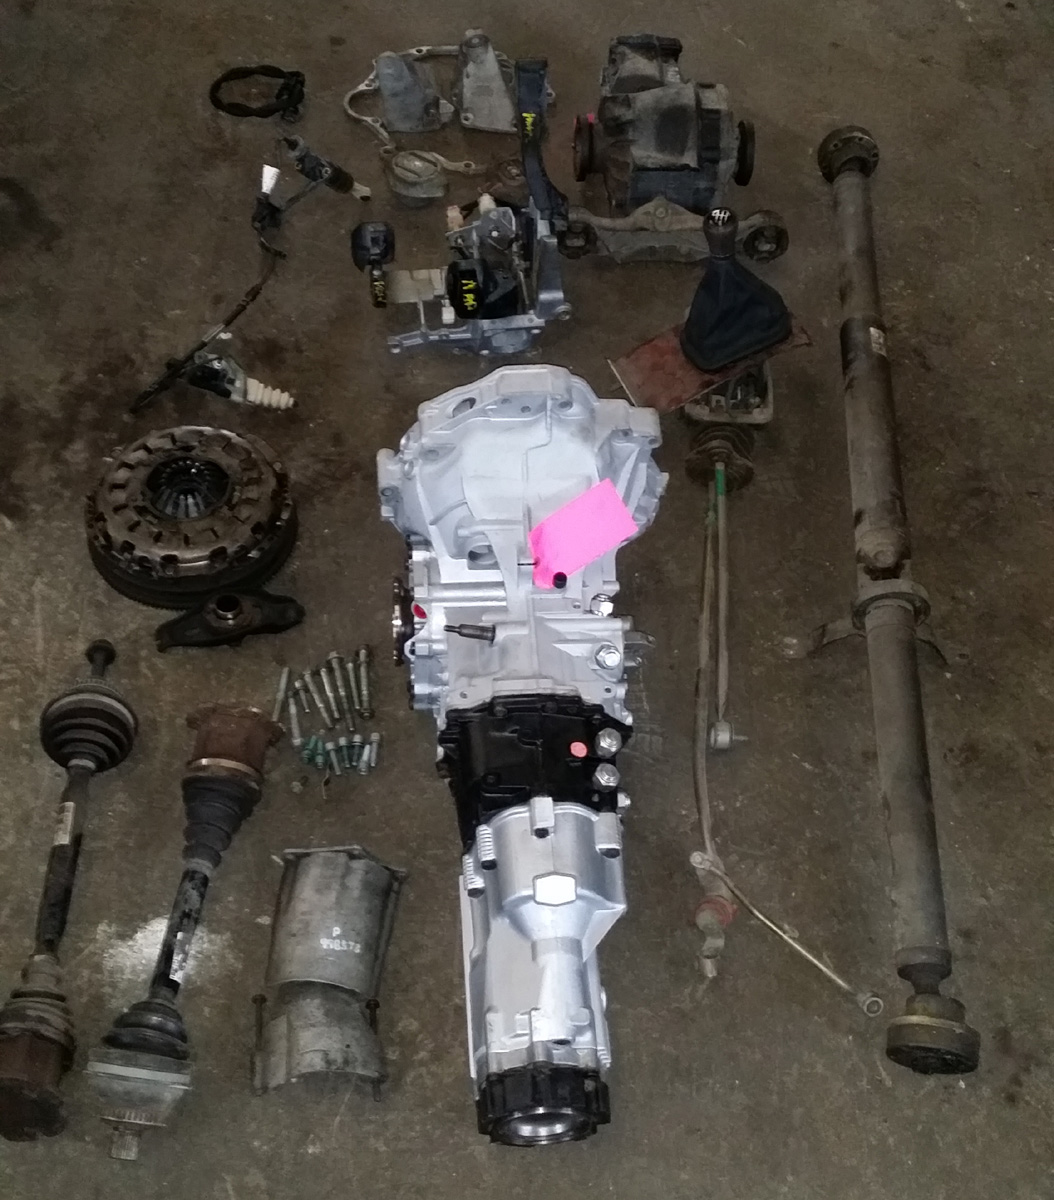 Audi B5 S4/A4 6 speed economy transmission conversion / swap